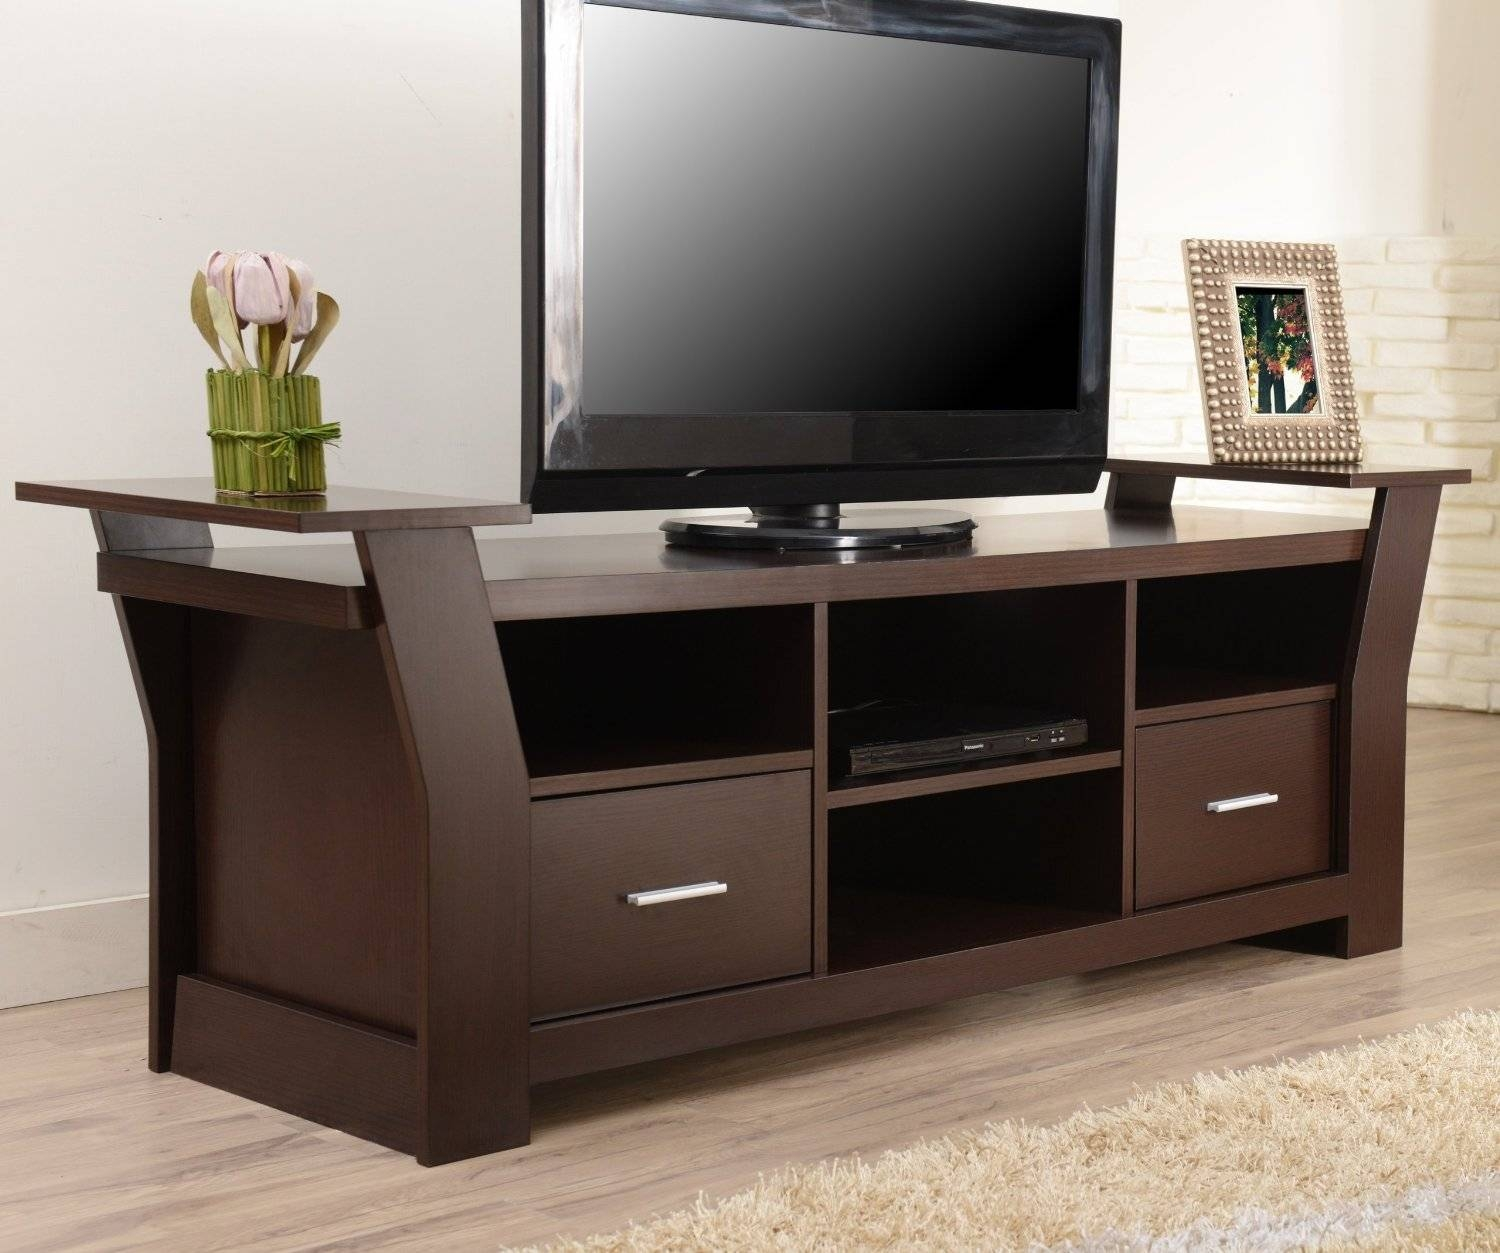 Tv Stands Tube Wide Tv Entertainment Center | Home Interior And intended for Tv Stands for Tube Tvs (Image 13 of 15)